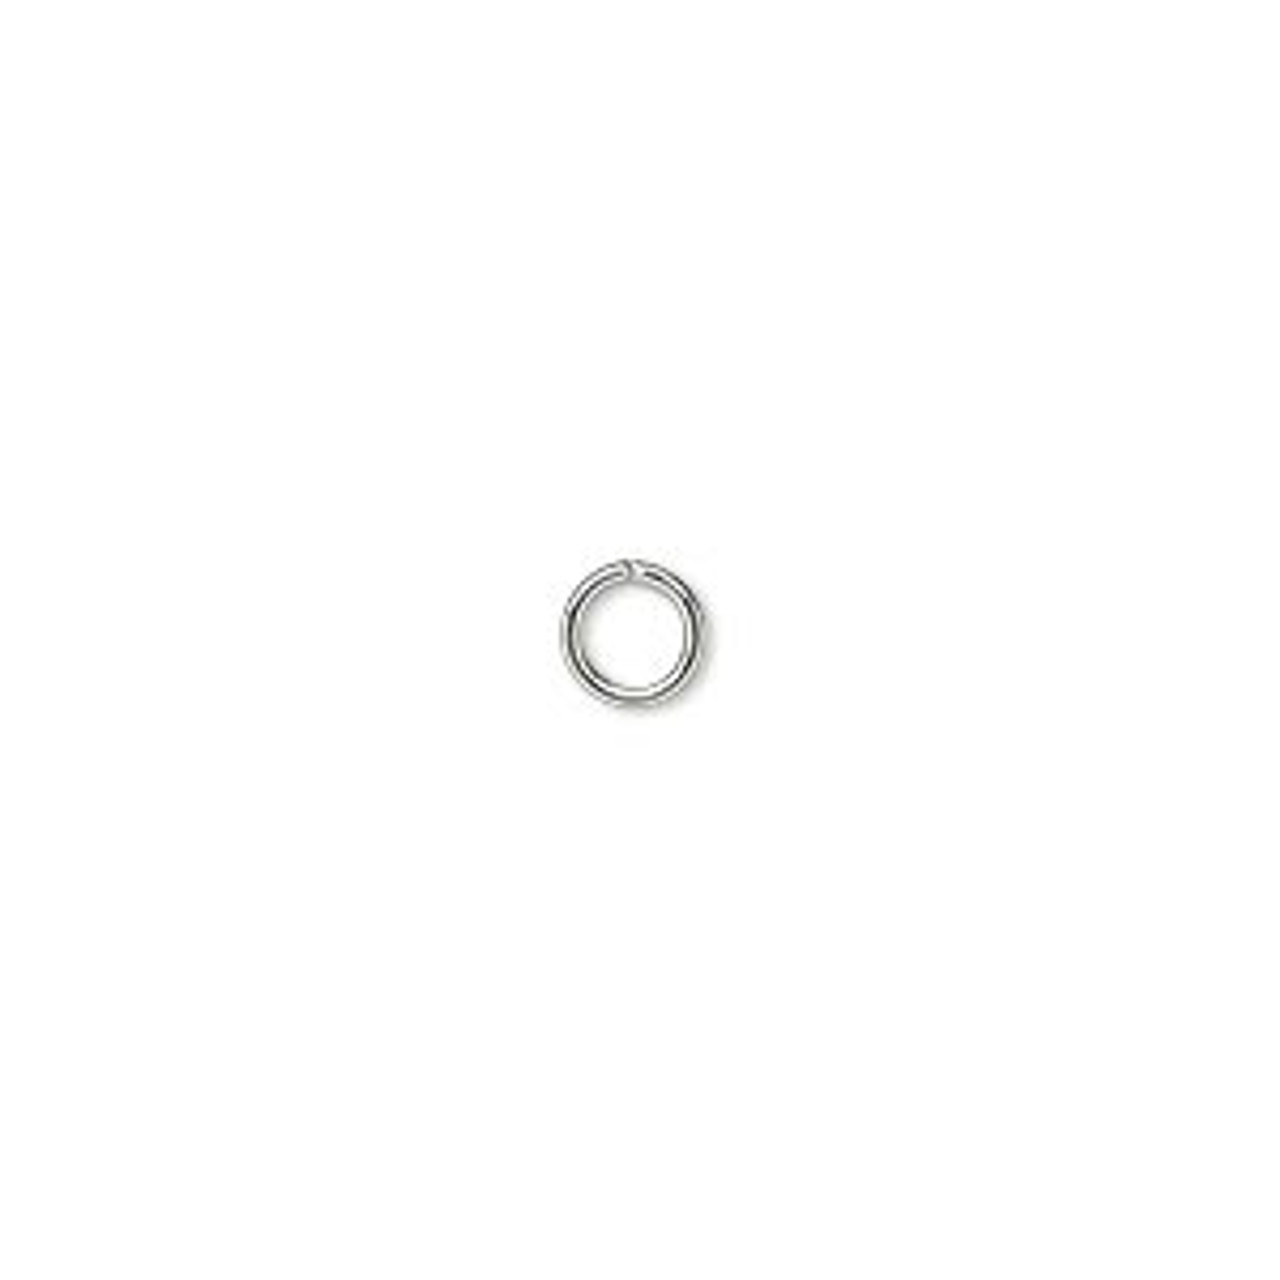 5mm 18ga Silver Plated Jump Ring 100pk